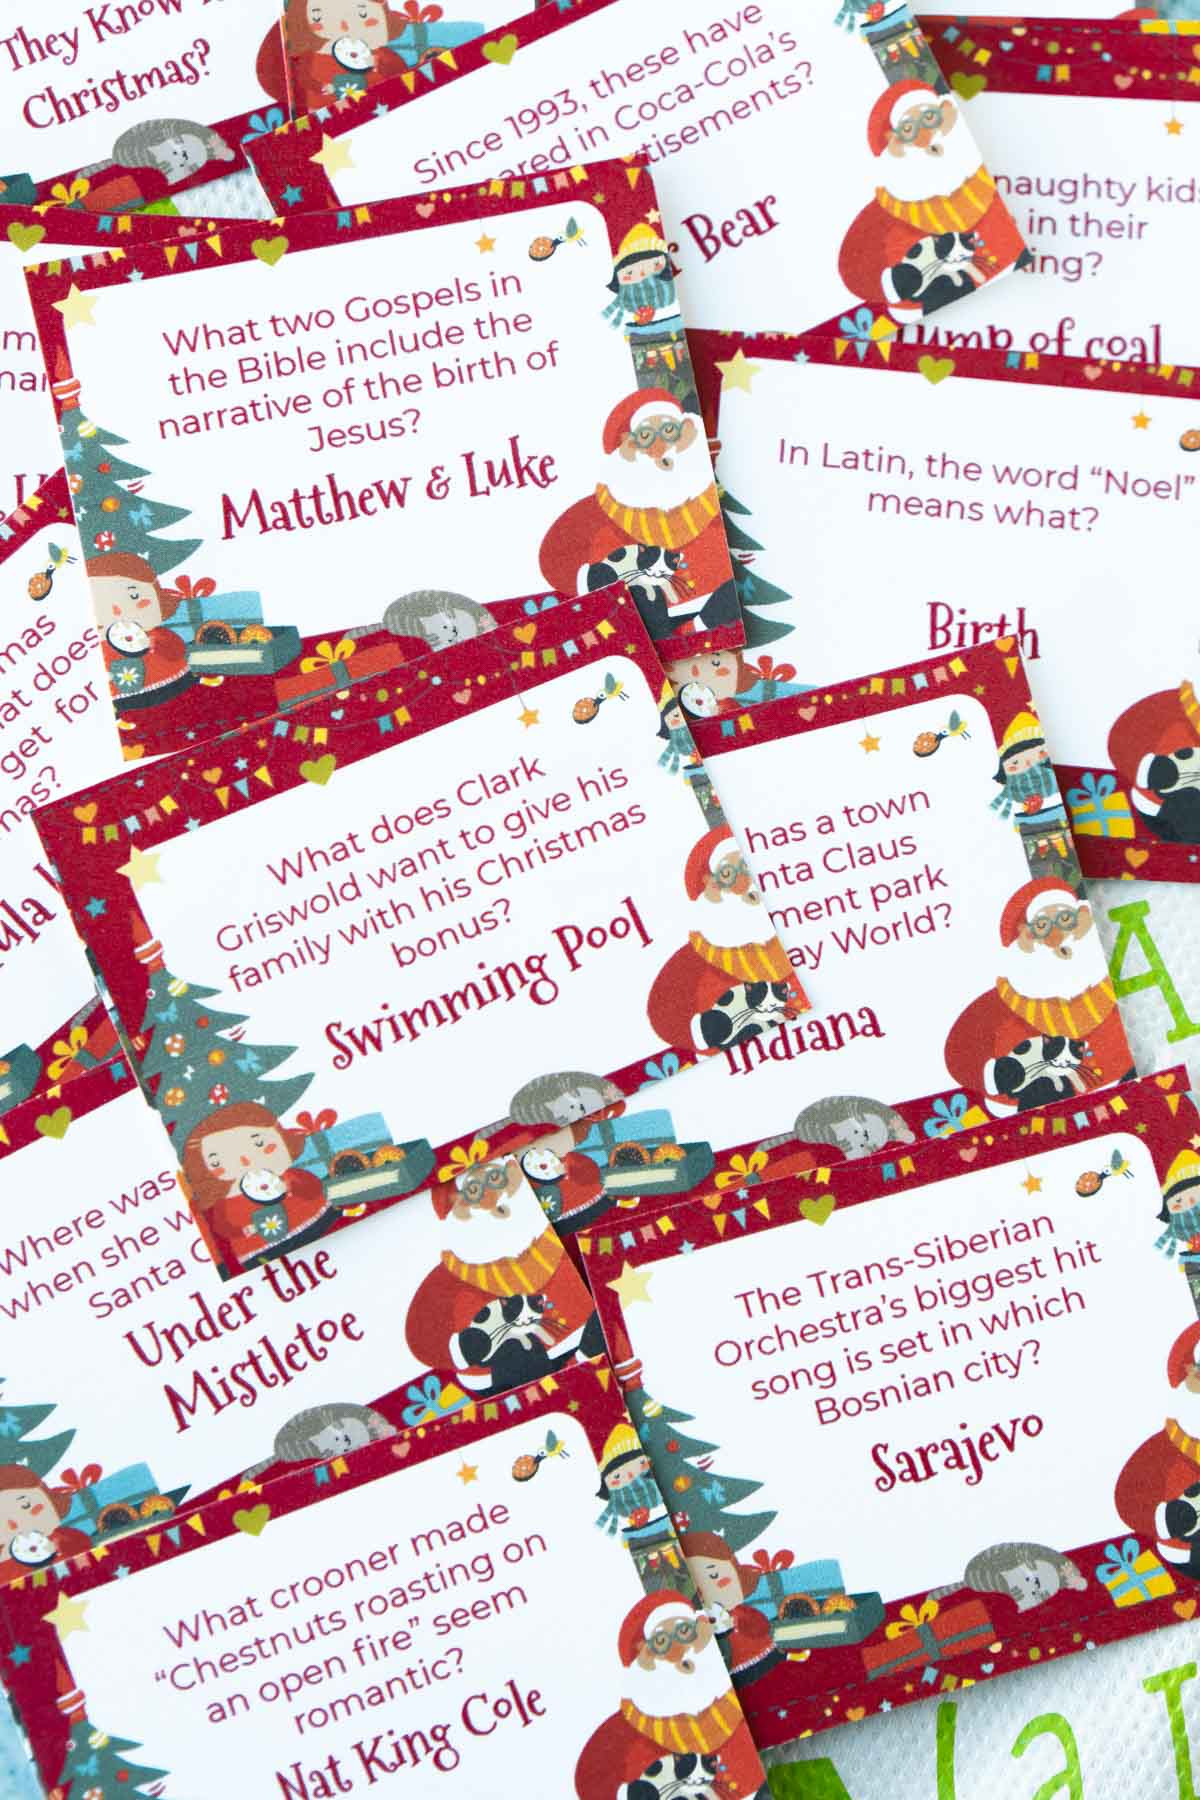 Christmas trivia questions on cards in a pile